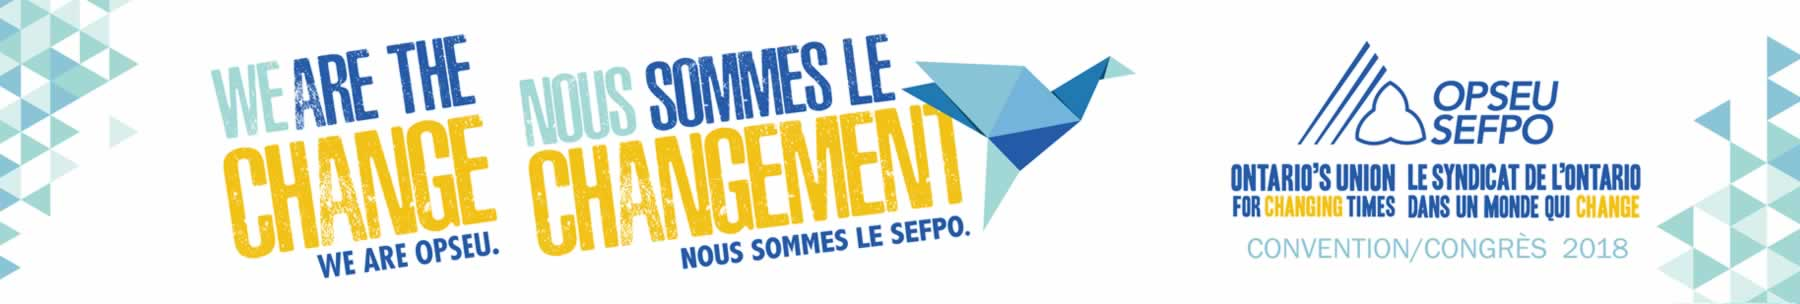 Convention 2018 Banner: We are change, we are OPSEU Nous